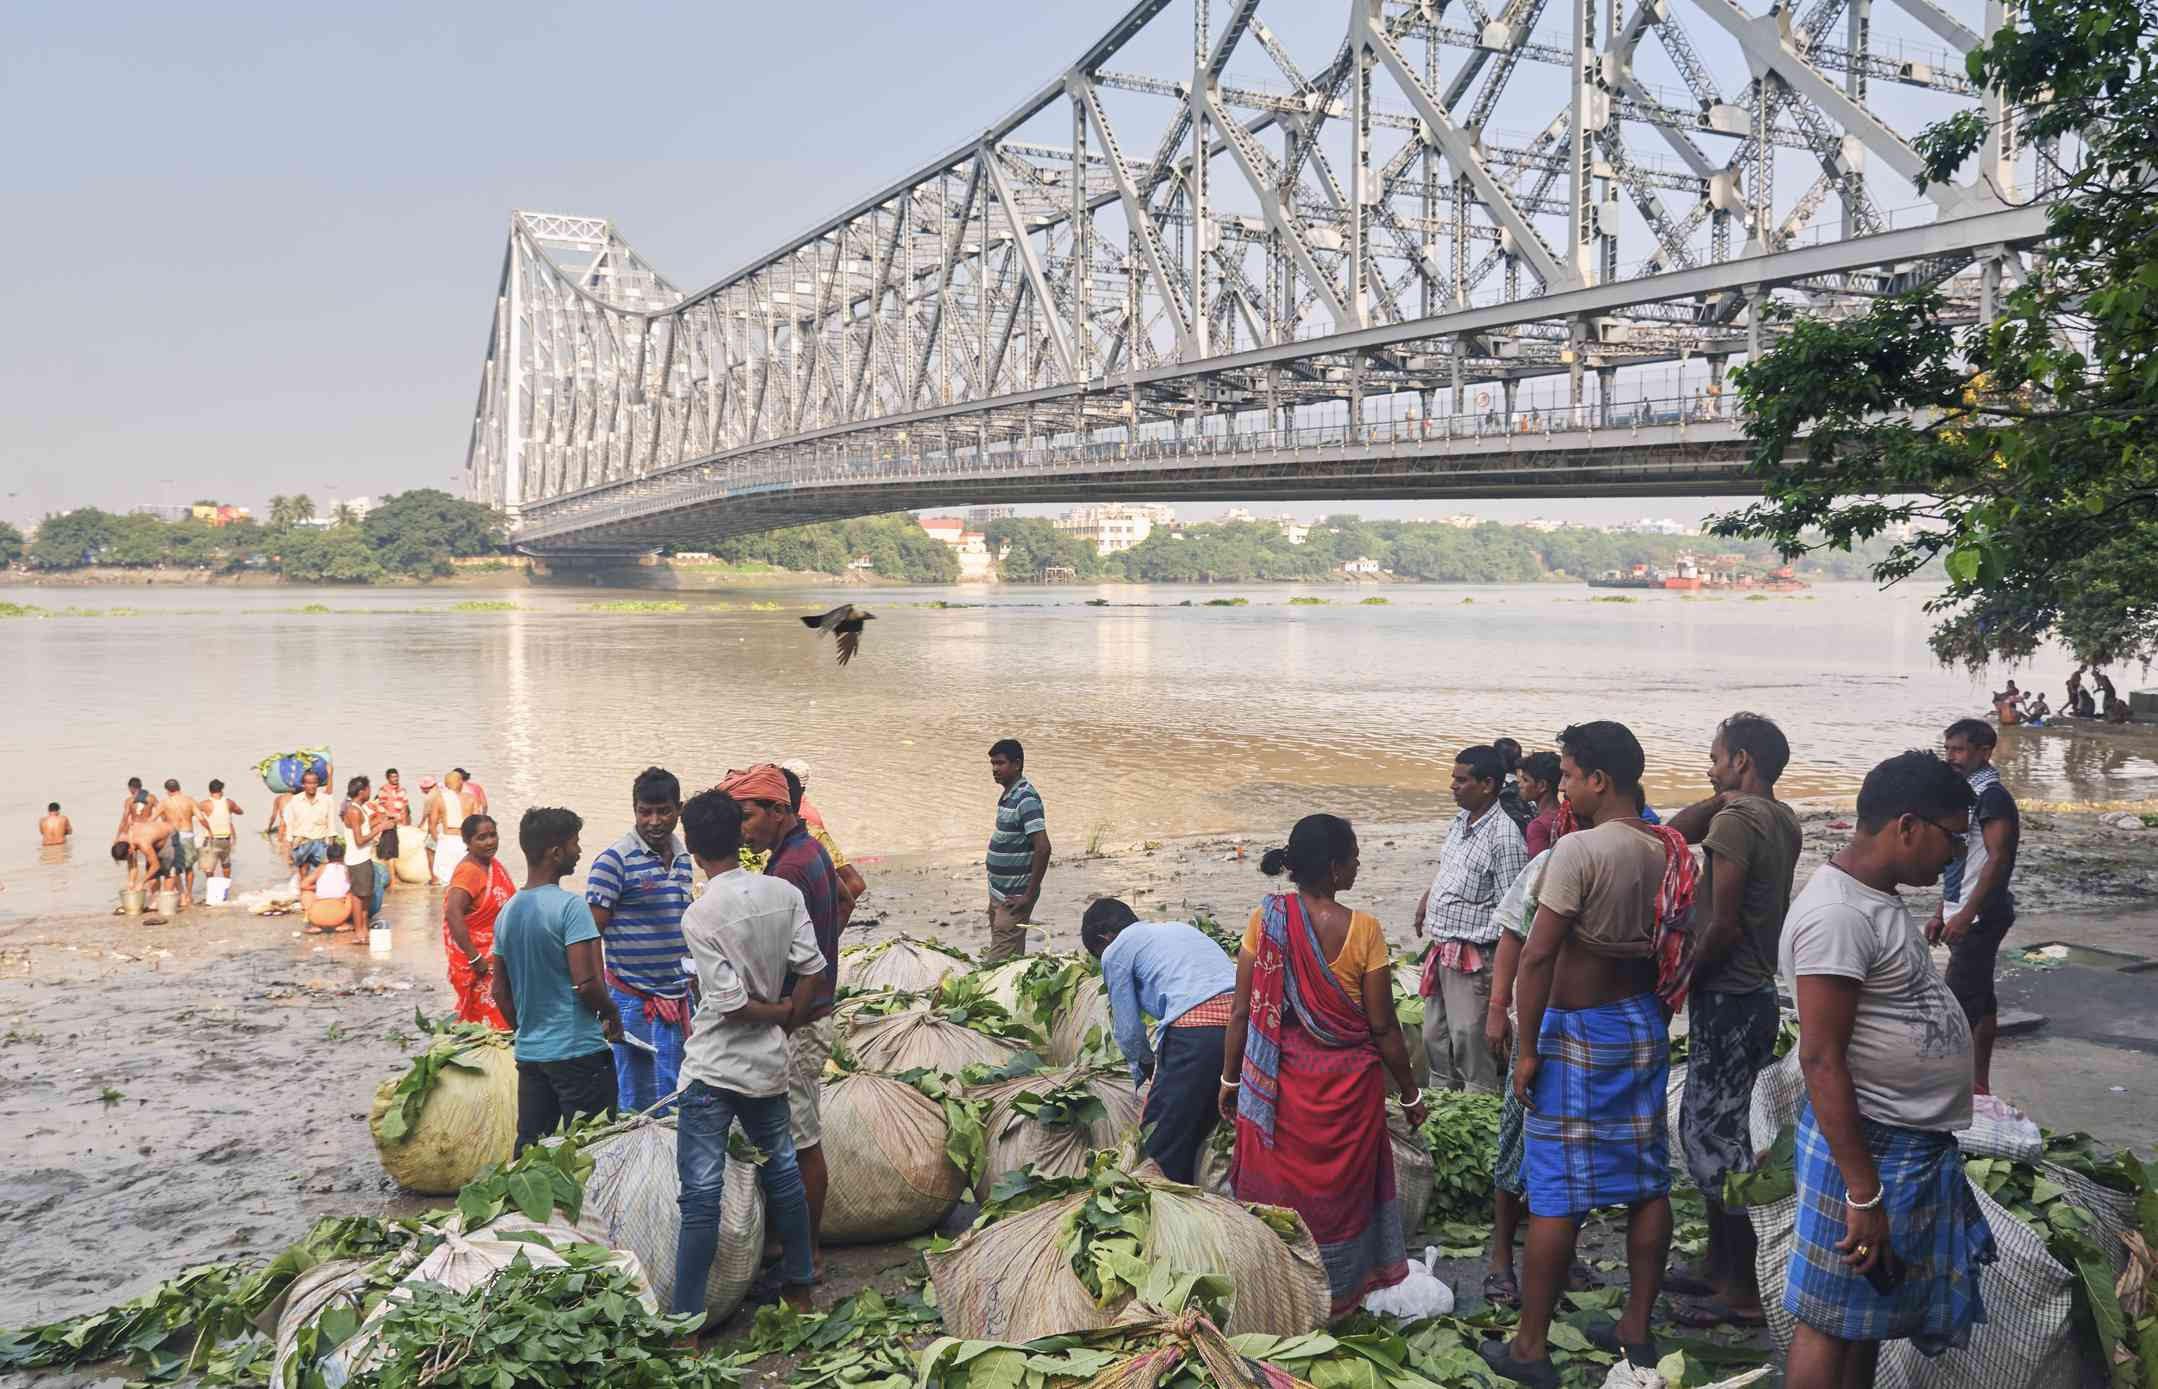 Daily activities of people and flower traders at Mallick ghat